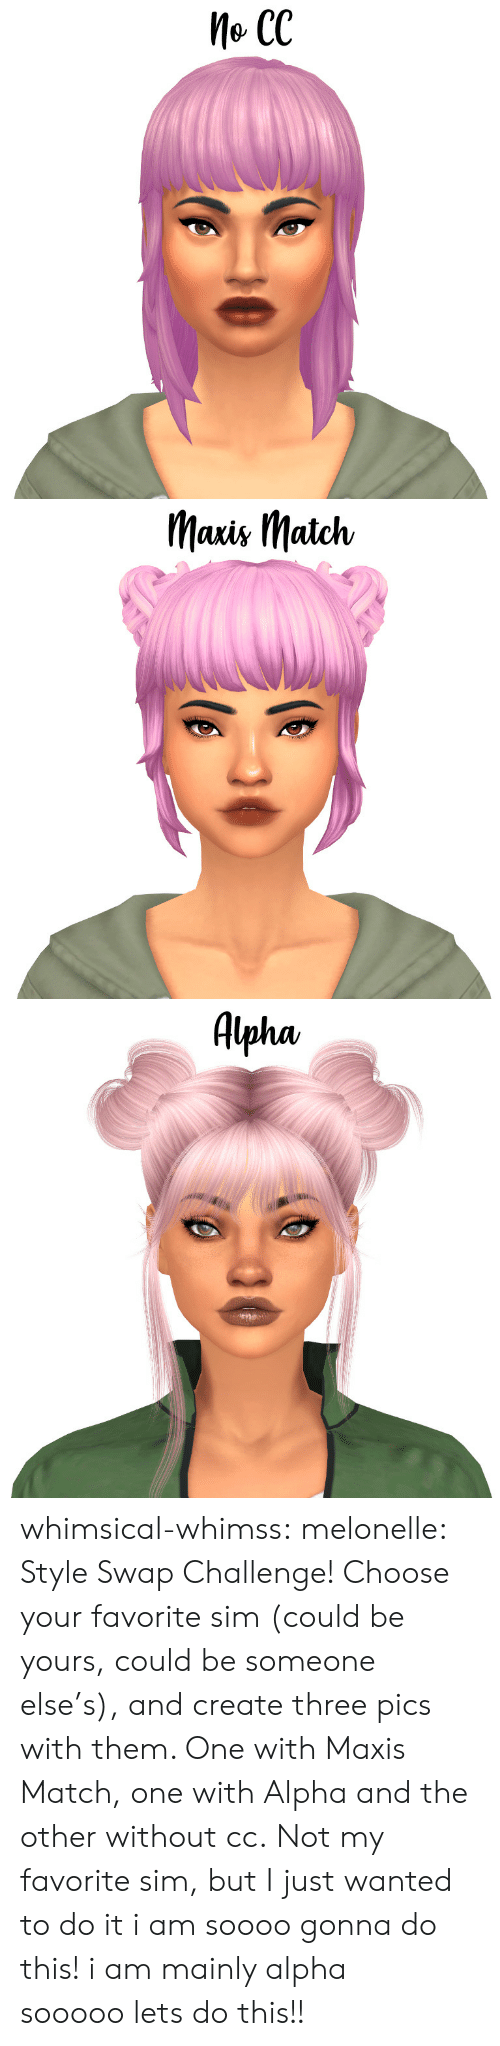 Tumblr, Blog, and Match: Me CC   Mais IMatch   Alpha, whimsical-whimss:  melonelle: Style Swap Challenge! Choose your favorite sim (could be yours, could be someone else's), and create three pics with them. One with Maxis Match, one with Alpha and the other without cc.Not my favorite sim, but I just wanted to do it  i am soooogonna do this! i am mainly alpha sooooolets do this!!